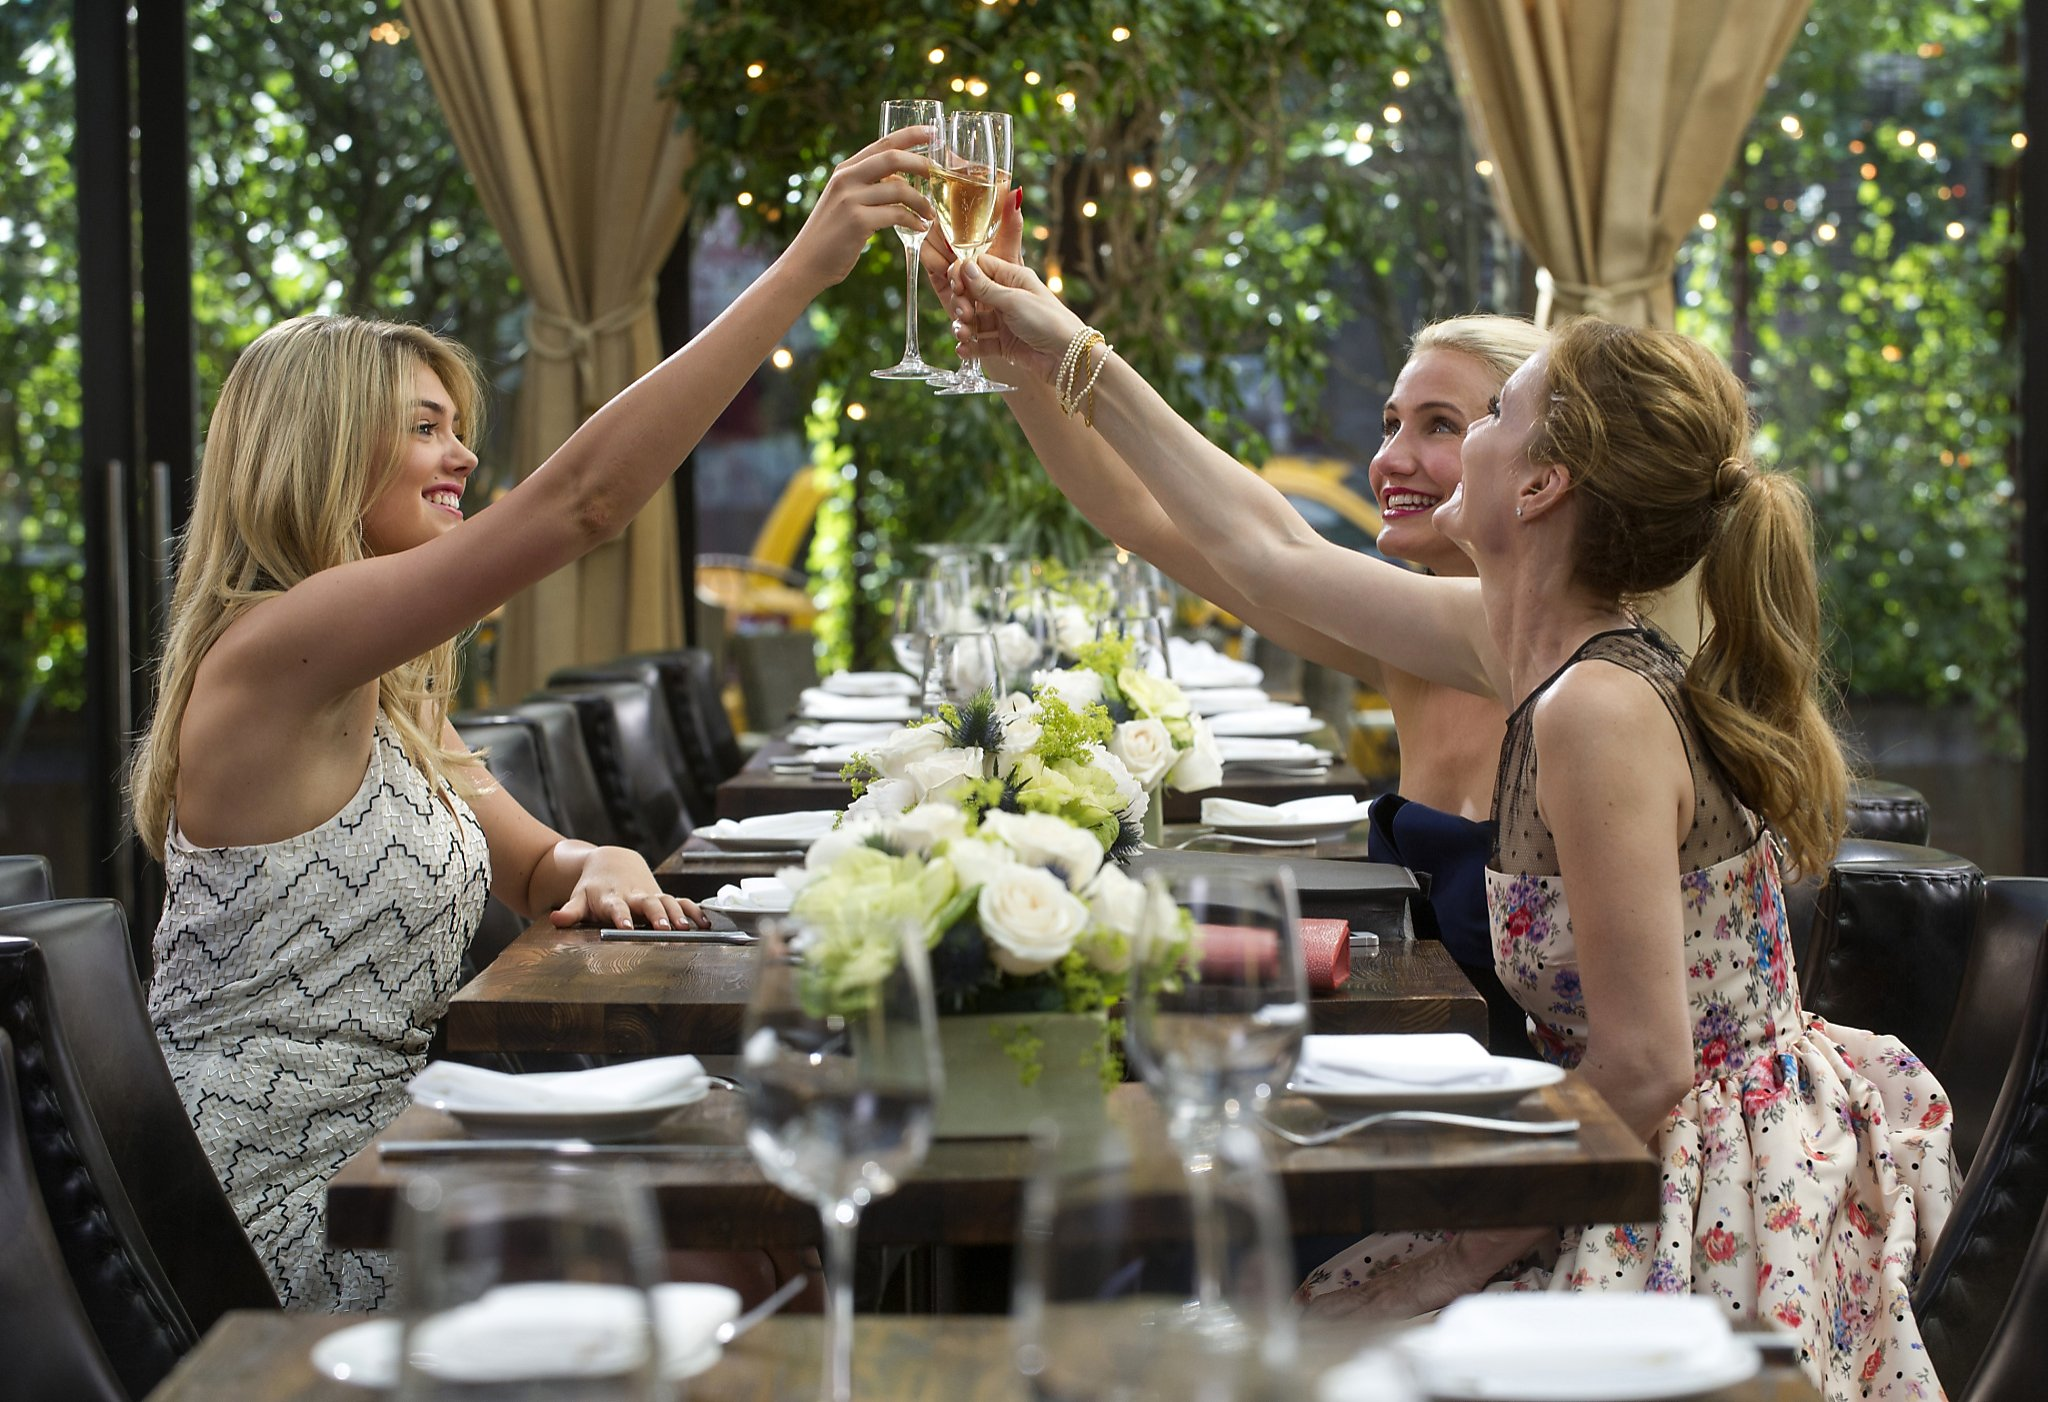 'The Other Woman' review: Smart comedy, with edge - SFGate